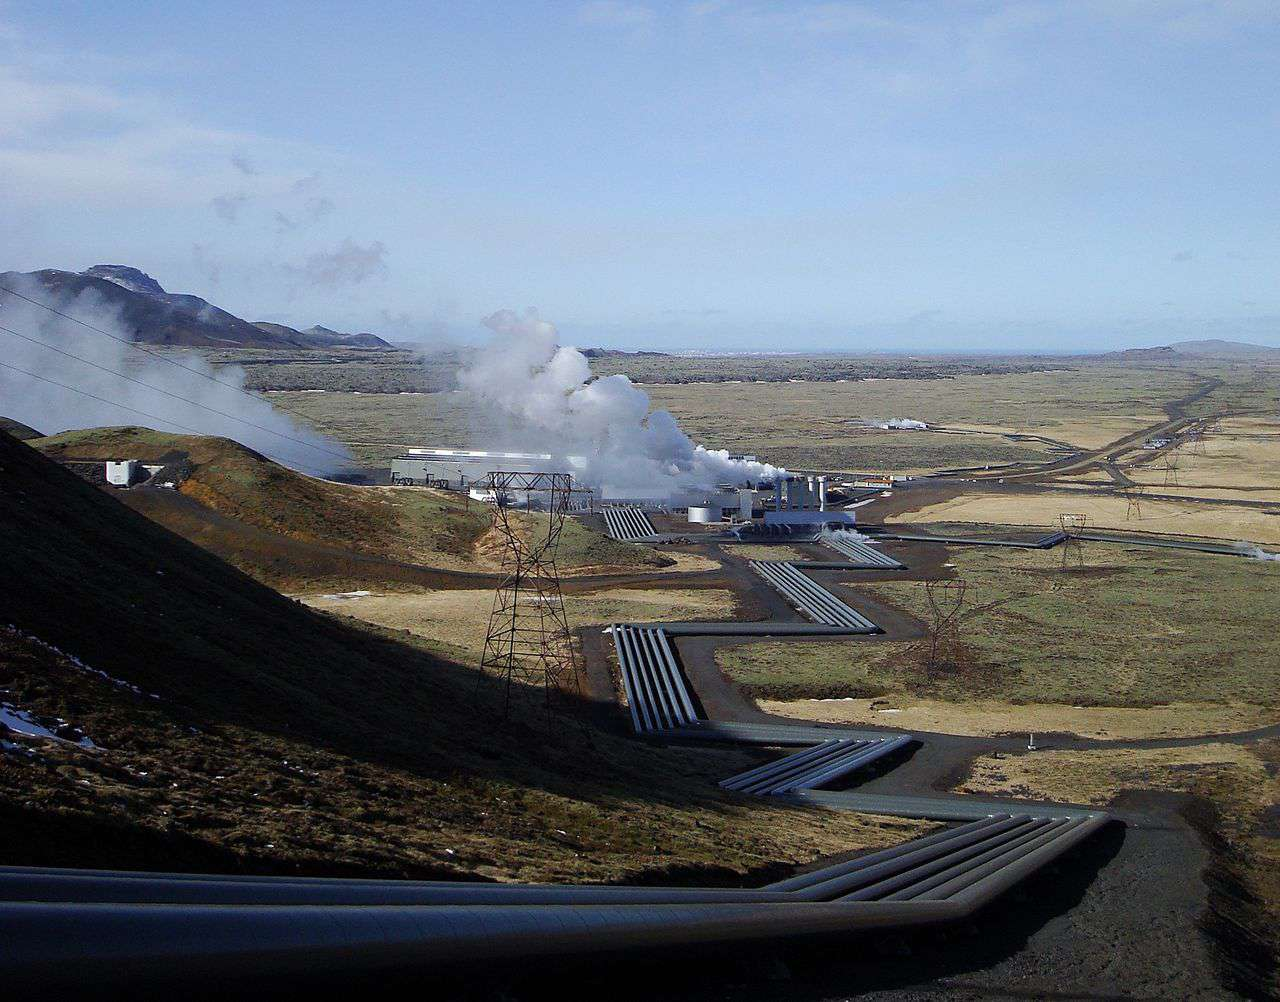 gesyers and geothermal heat